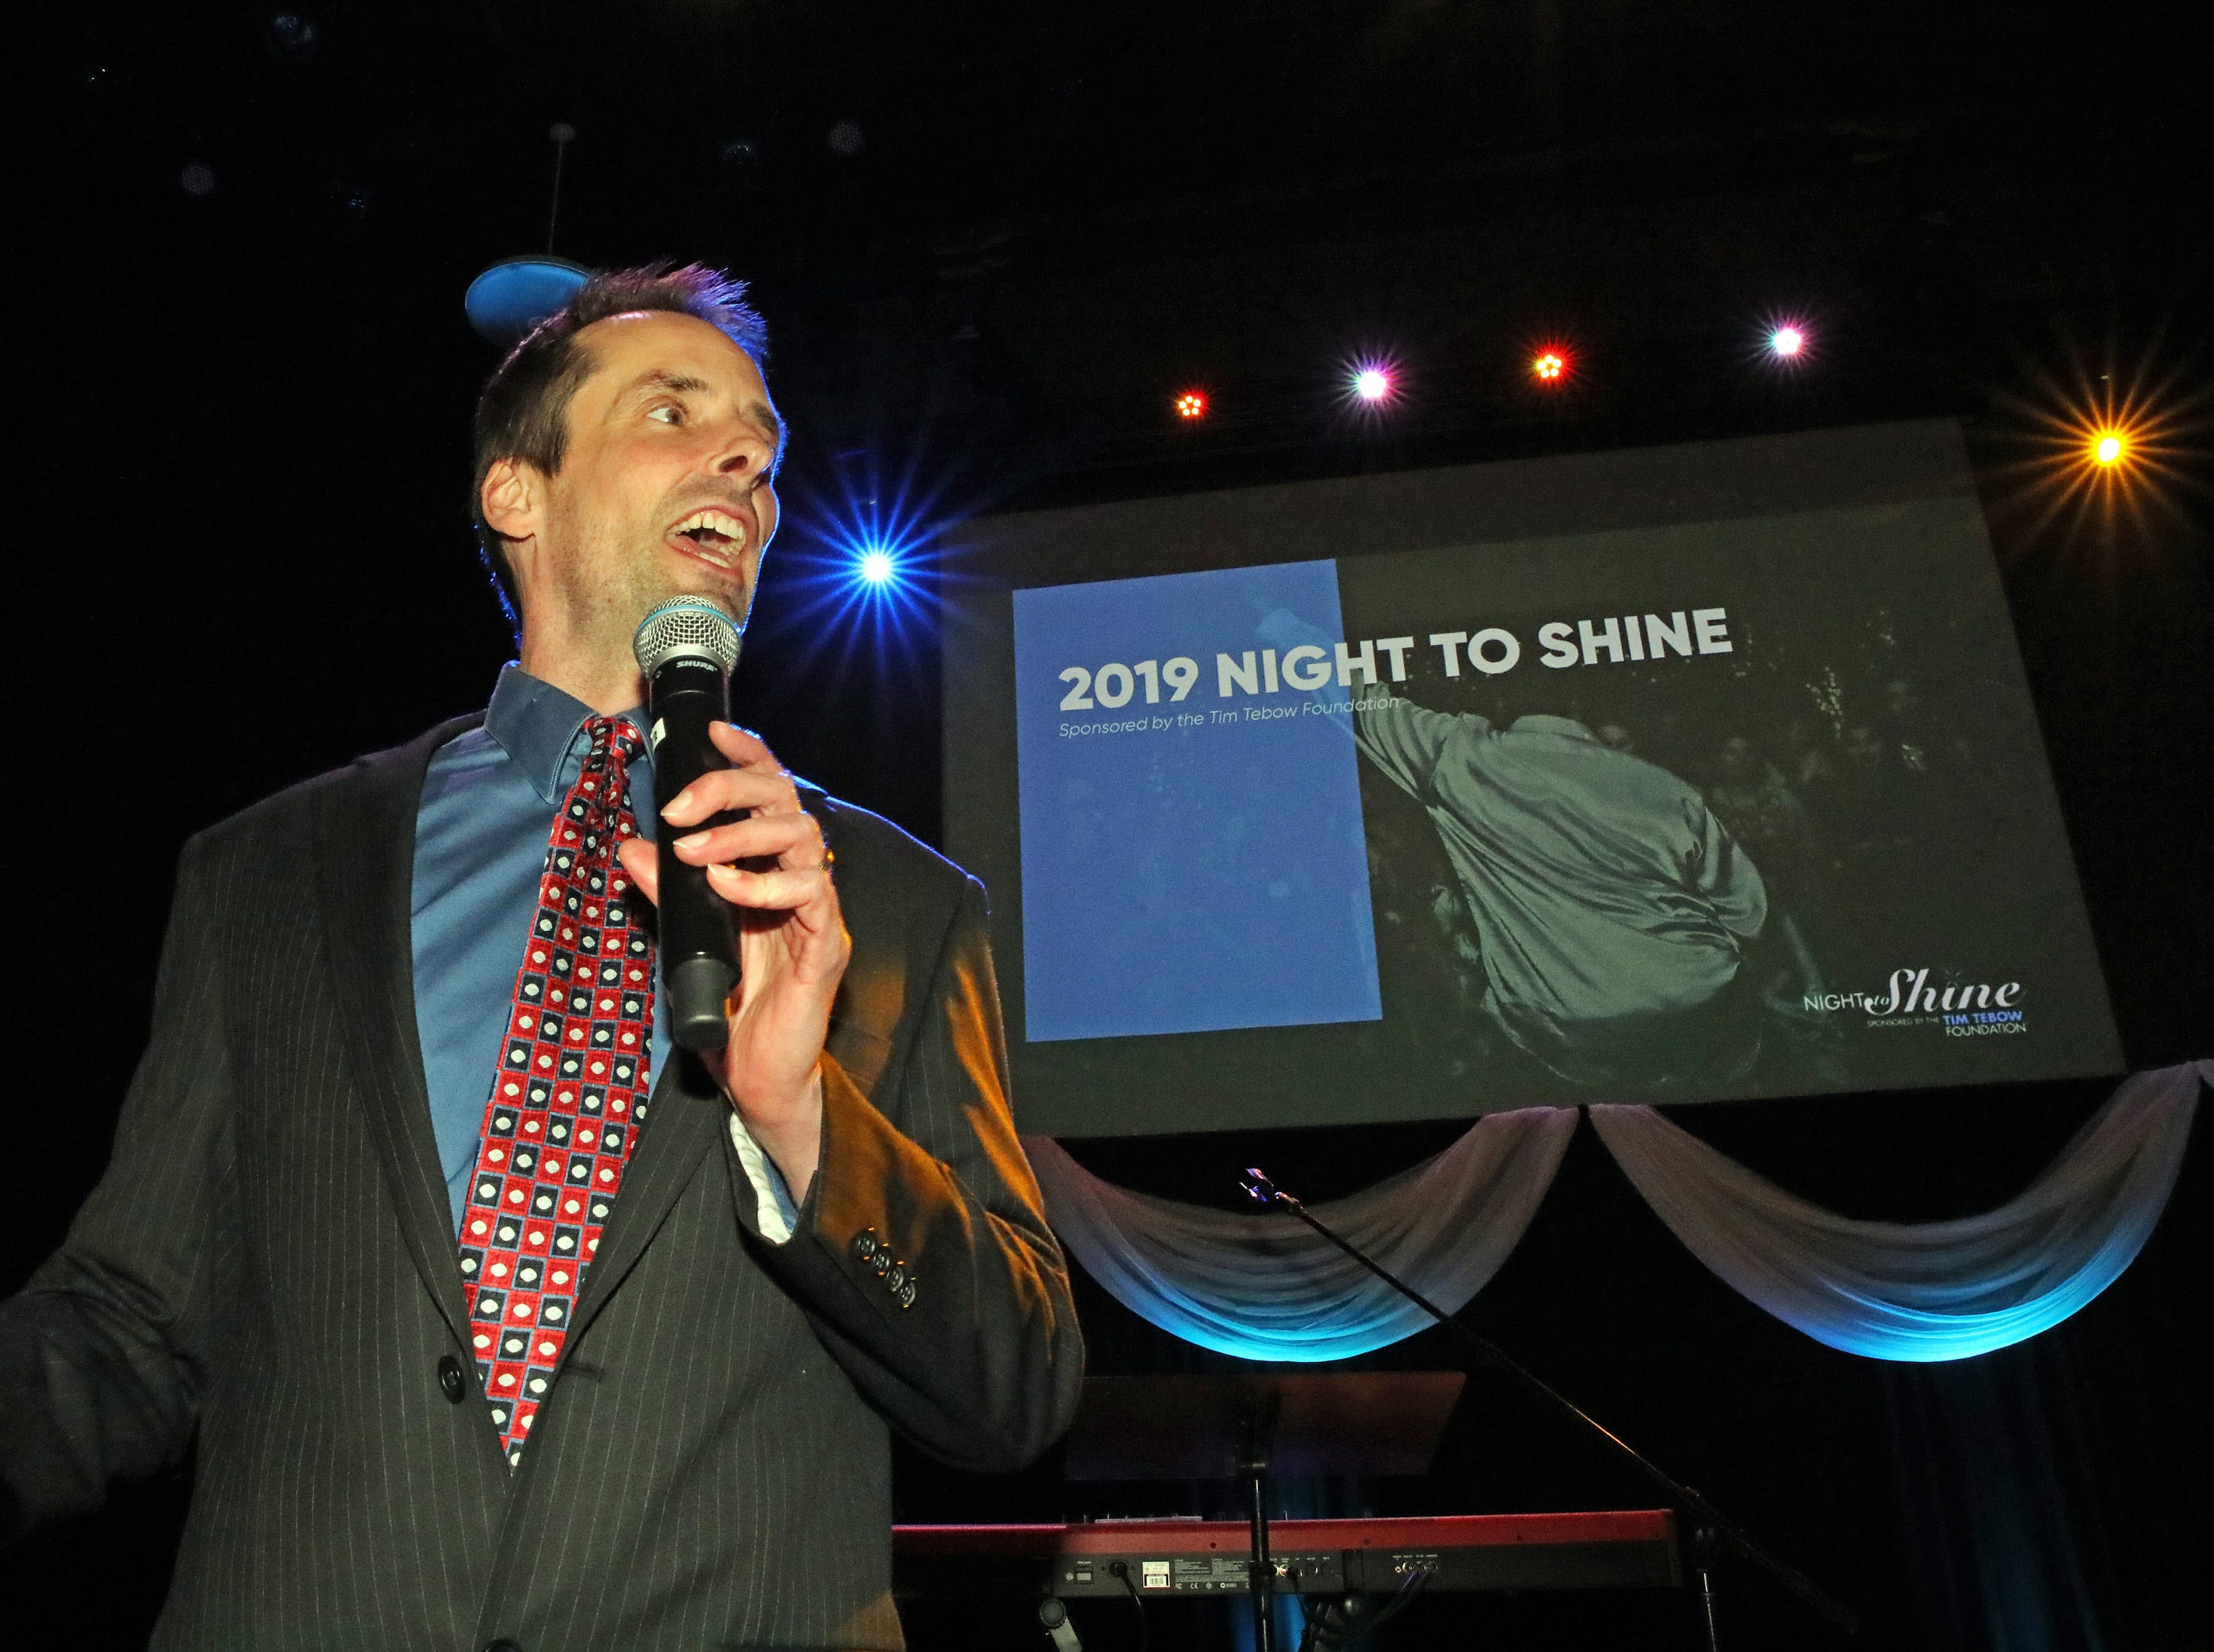 The Rev. Mike Van Rees welcomes everyone to the Night to Shine event at Prairie Ridge Church in Ankeny on Friday, Feb. 8, 2019. Sponsored by the Tim Tebow Foundation, the event for adults with special needs features a prom-like atmosphere with dancing, limo rides, food and more.